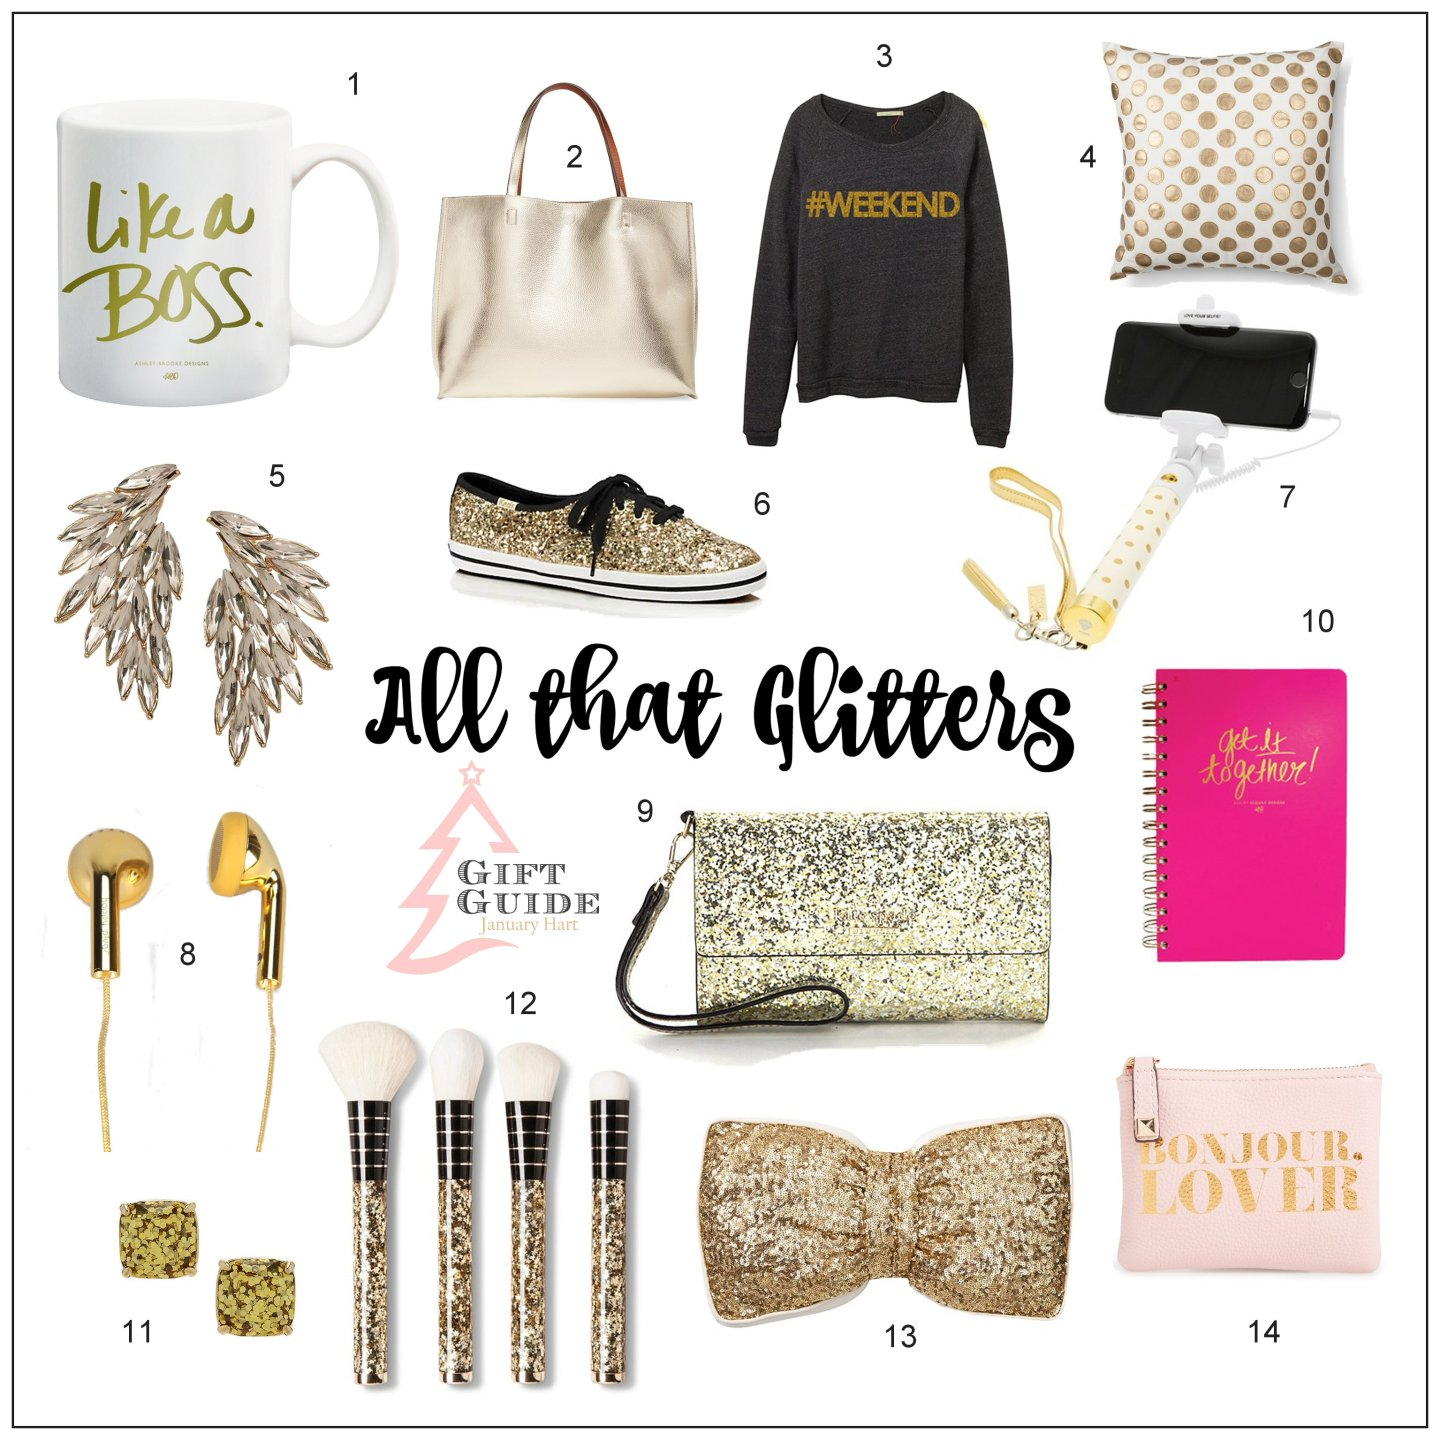 All that Glitters Gift Guide 2015